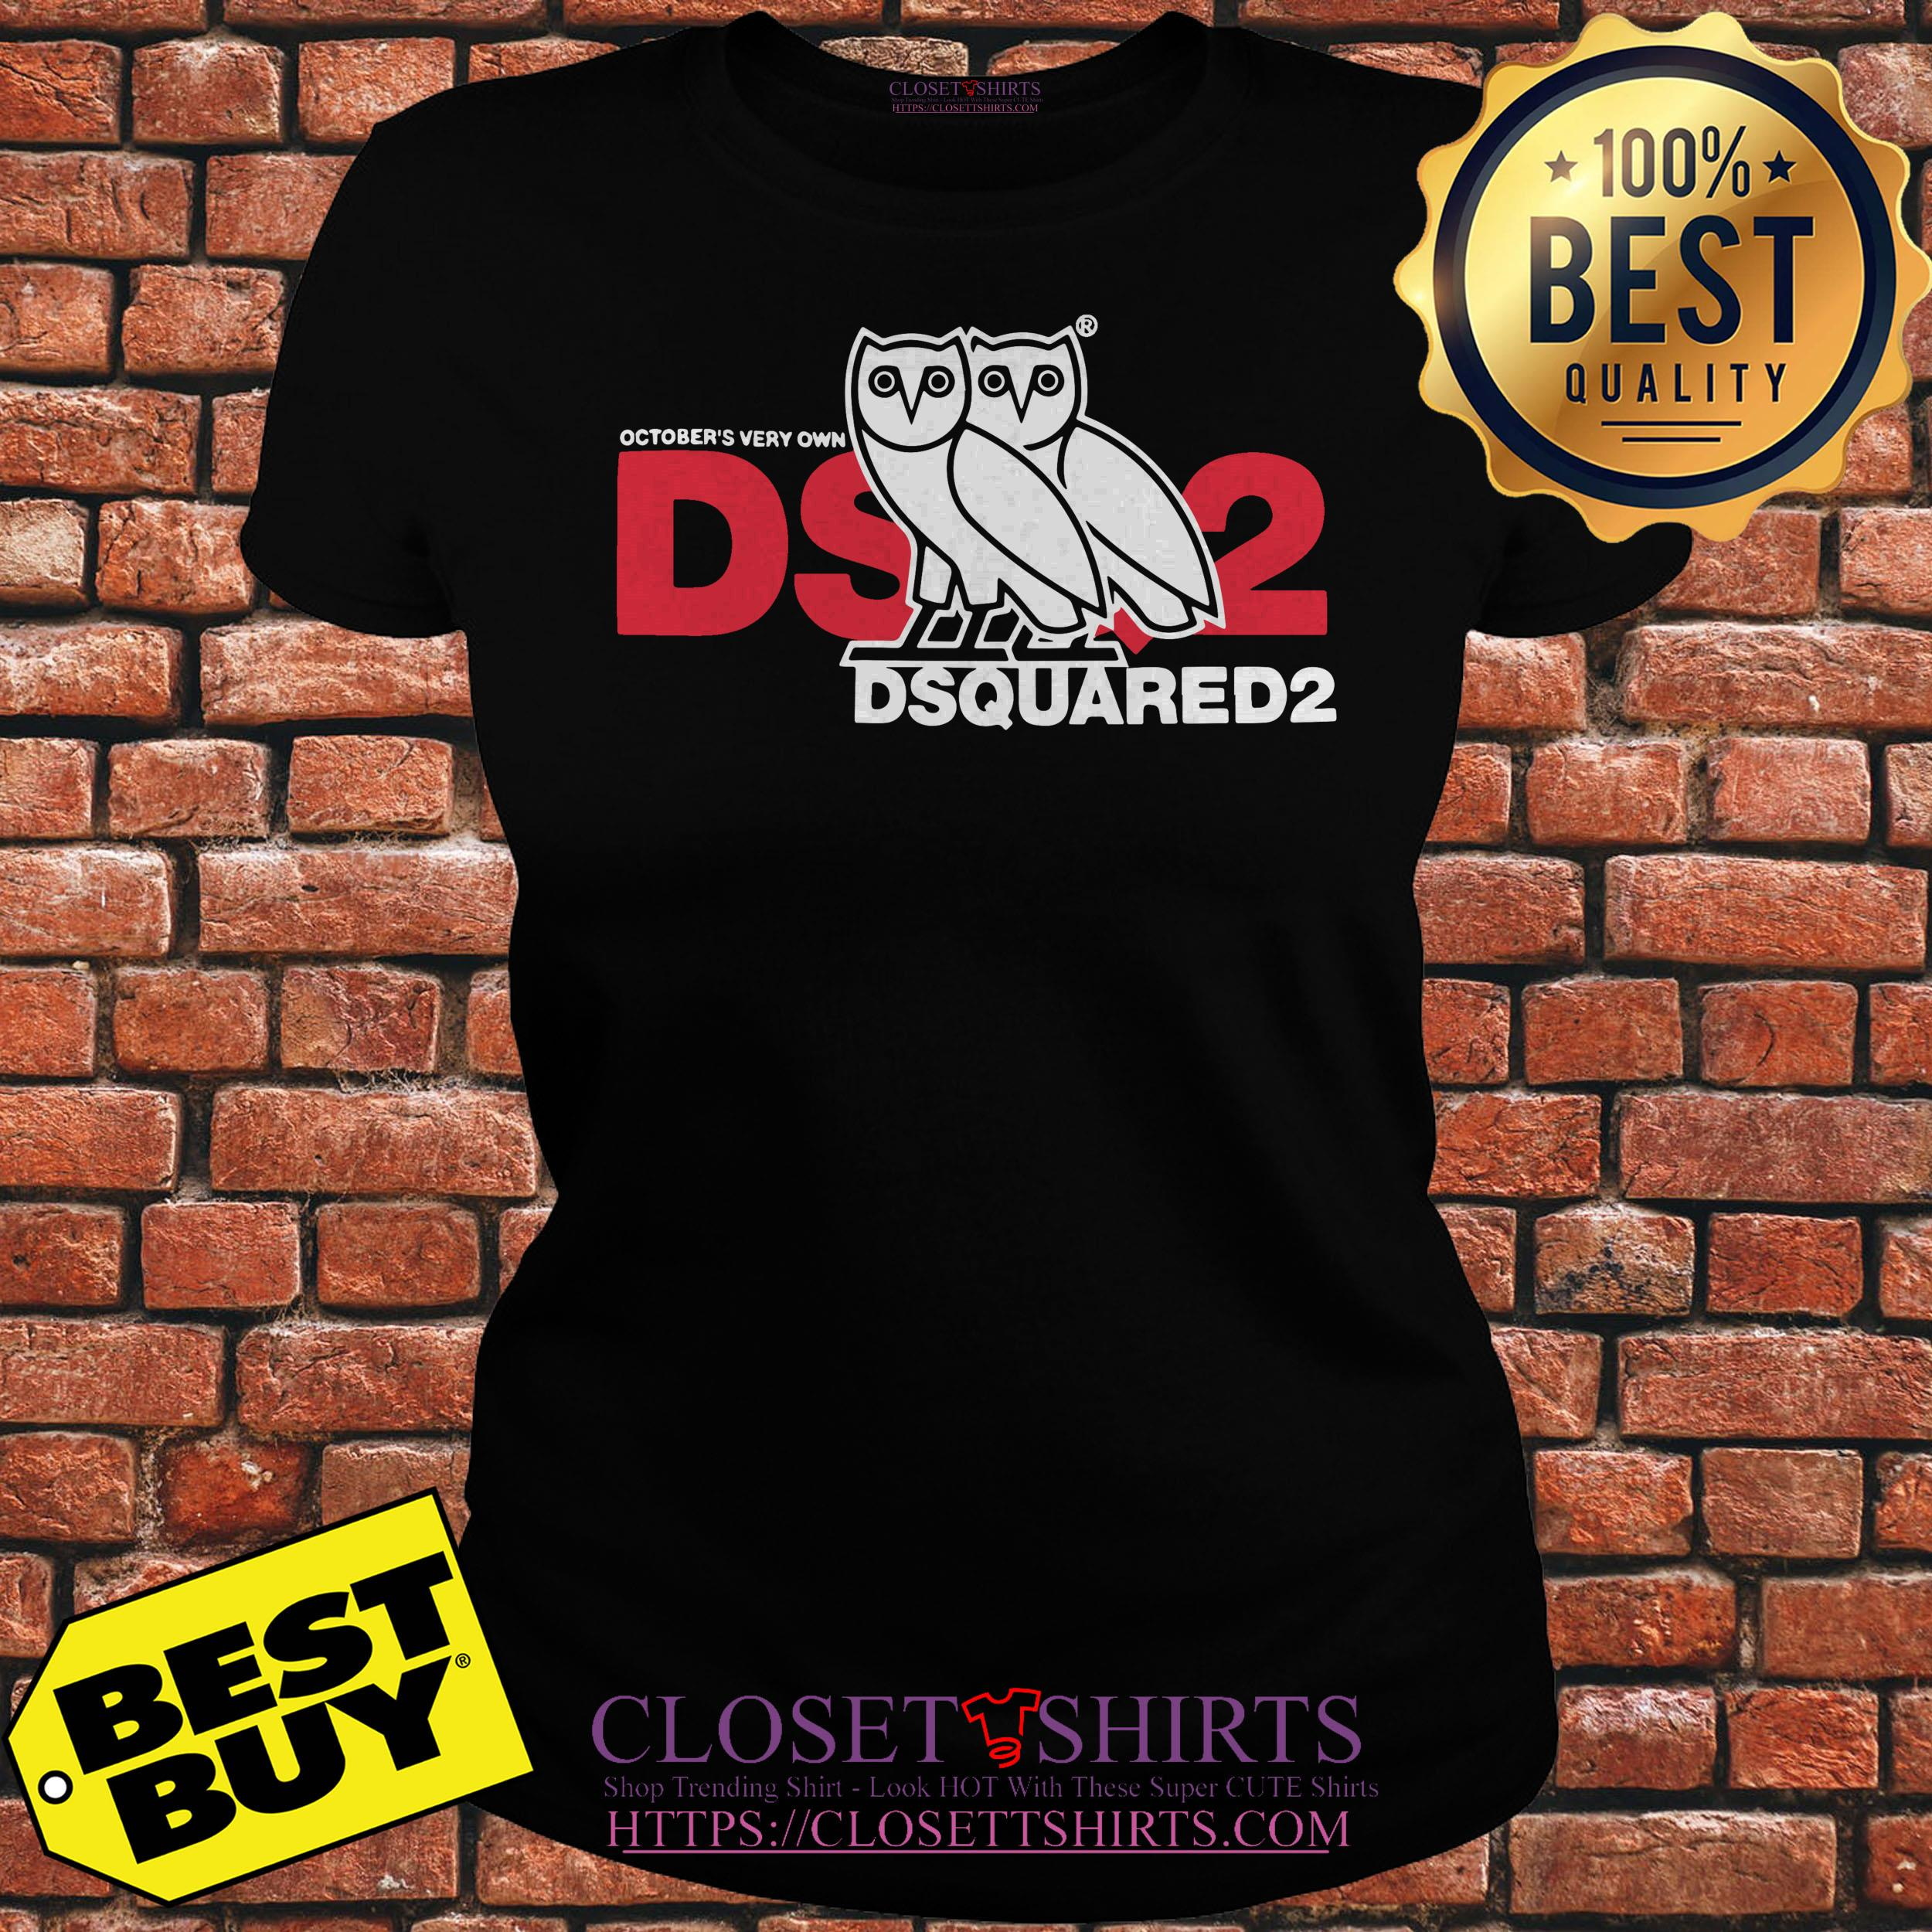 October's Ovo Very Own Dsquared2 v-neck